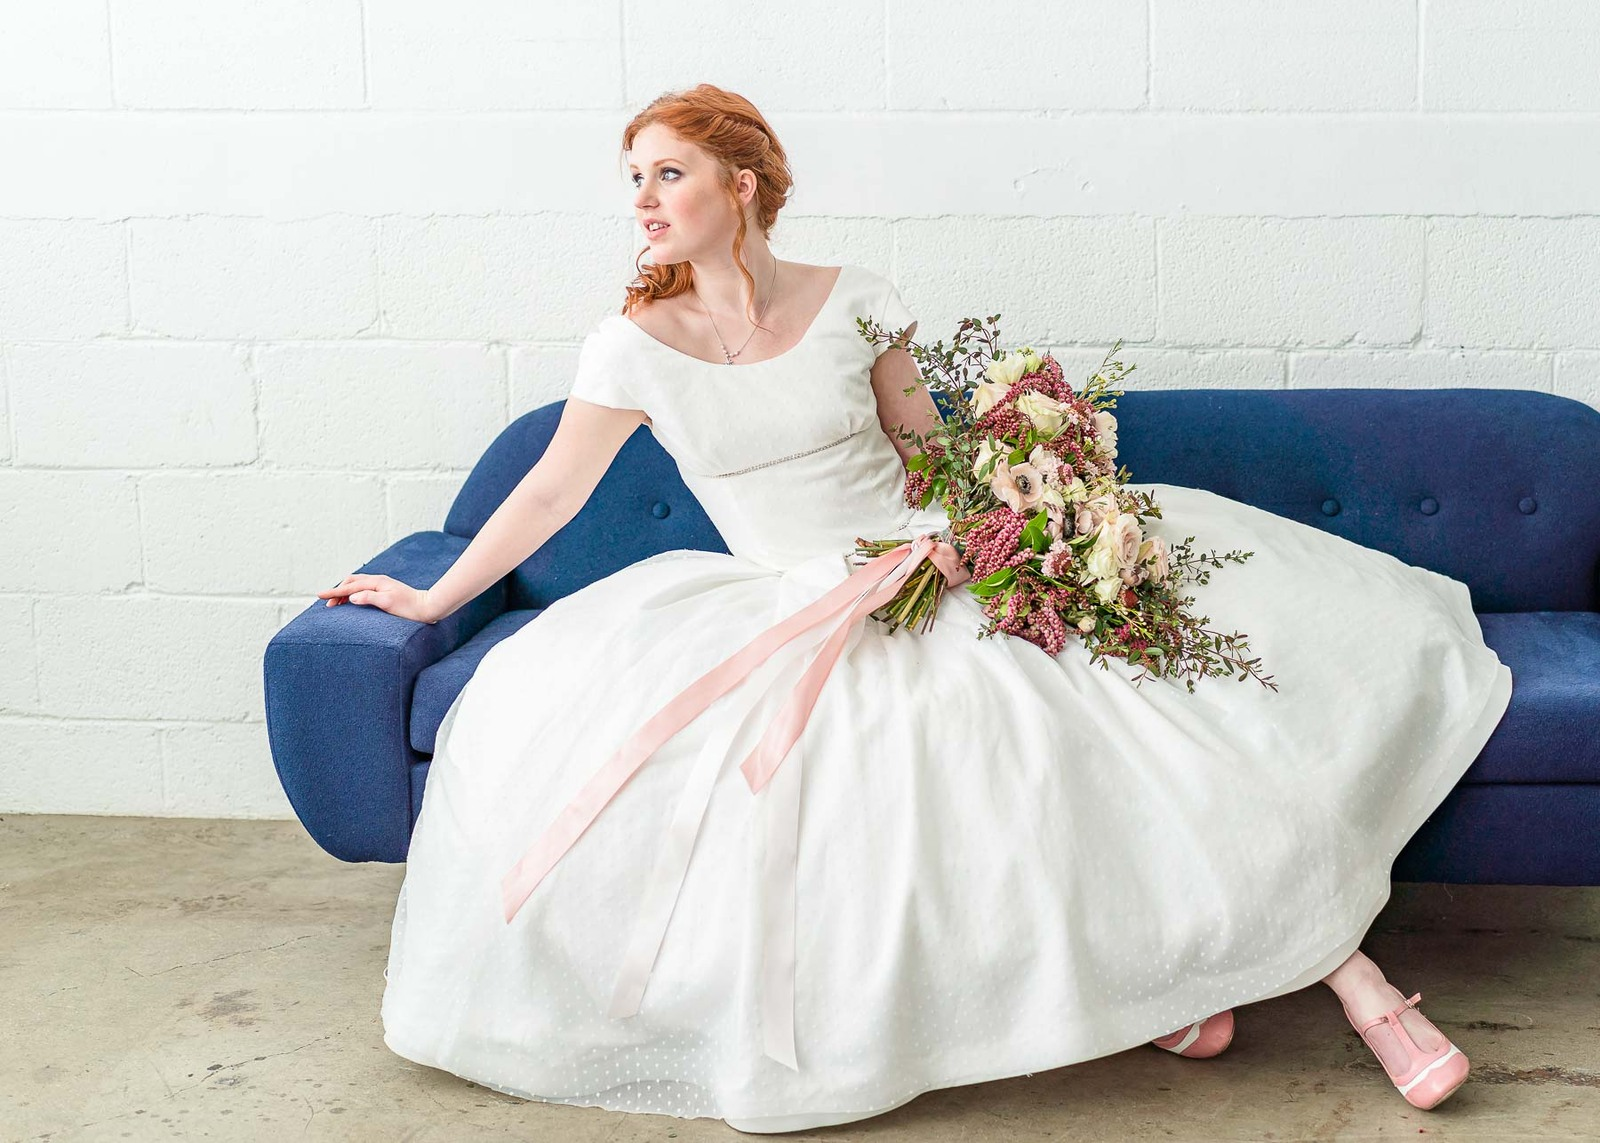 bride with white dress on blue couch with pink shoes